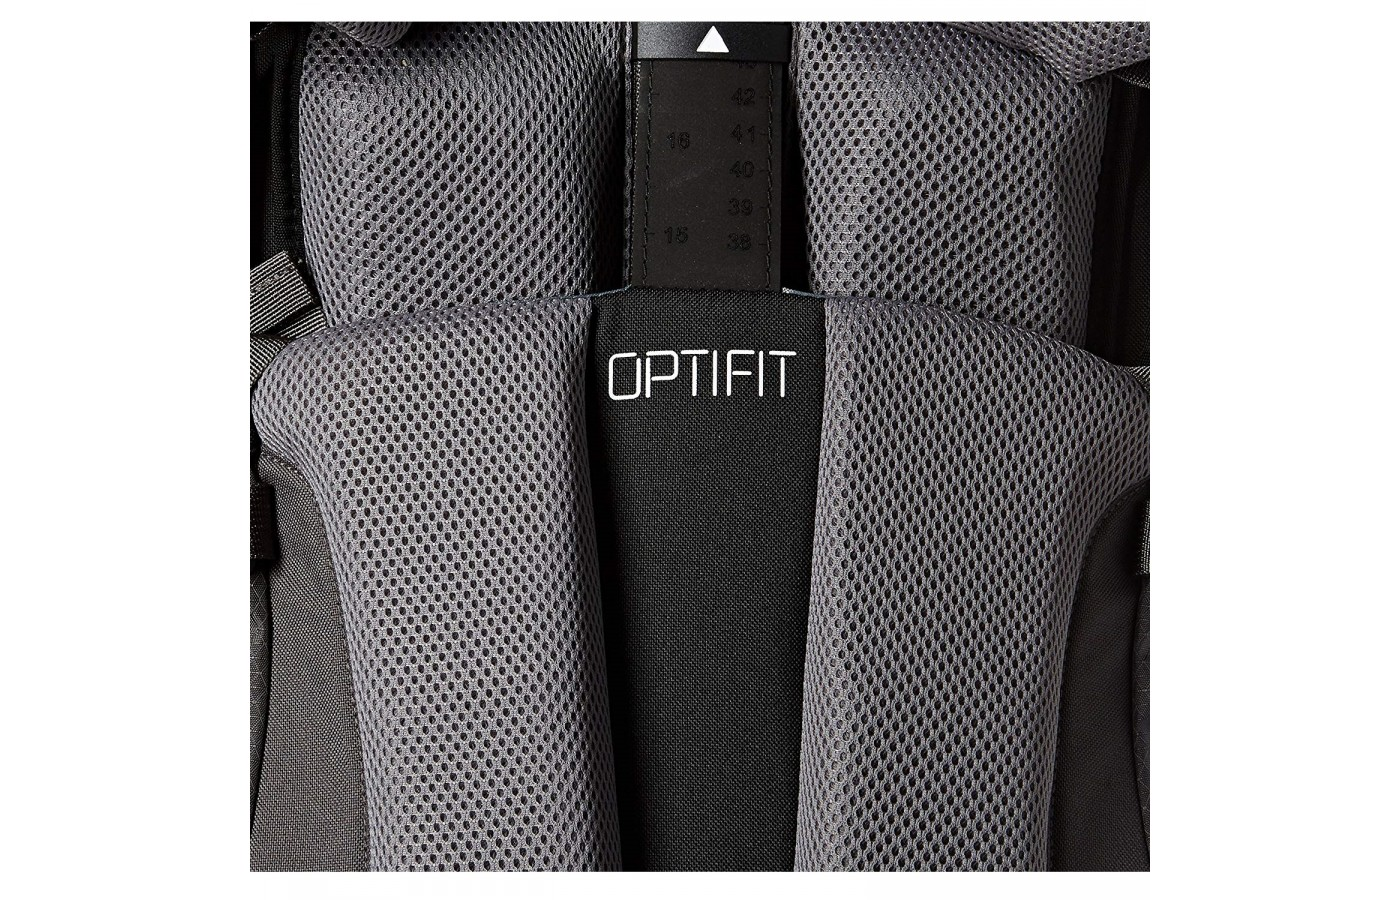 The North Face Terra 65 offers OPTIFIT suspension for better comfort.